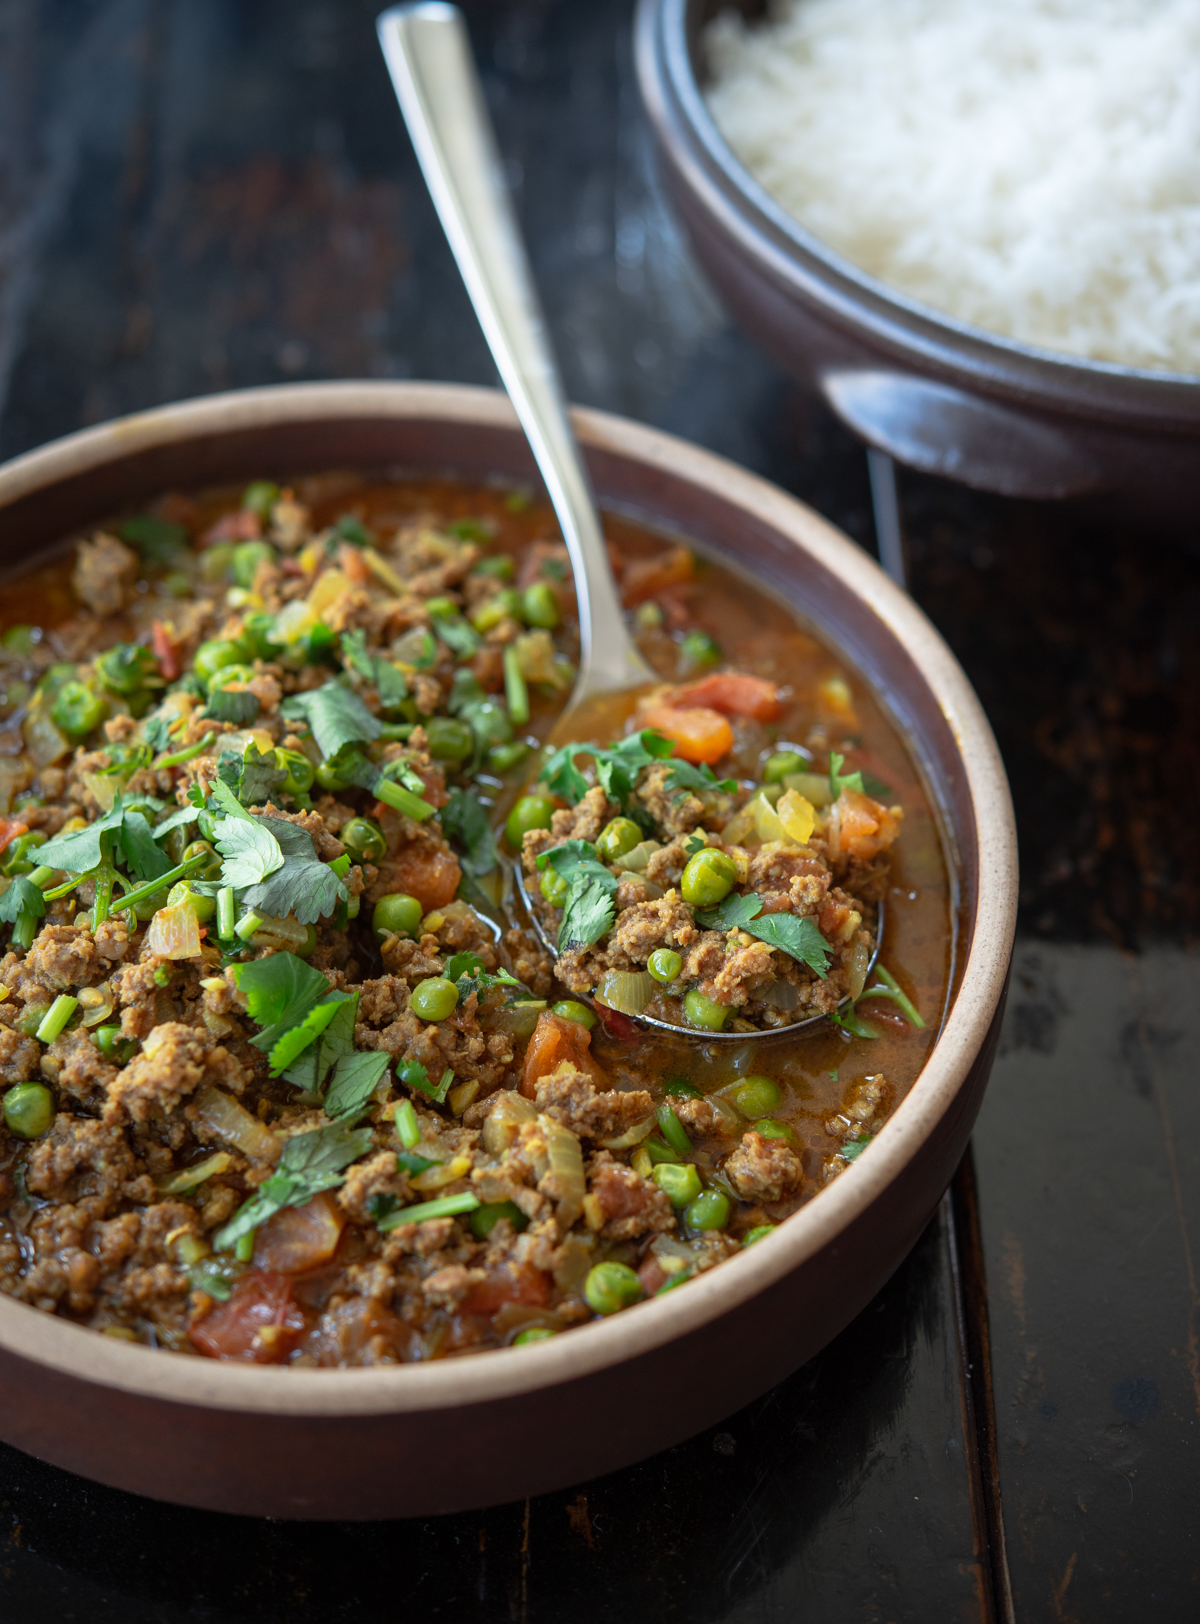 Keema curry is an easy Indian curry made with ground beef and peas